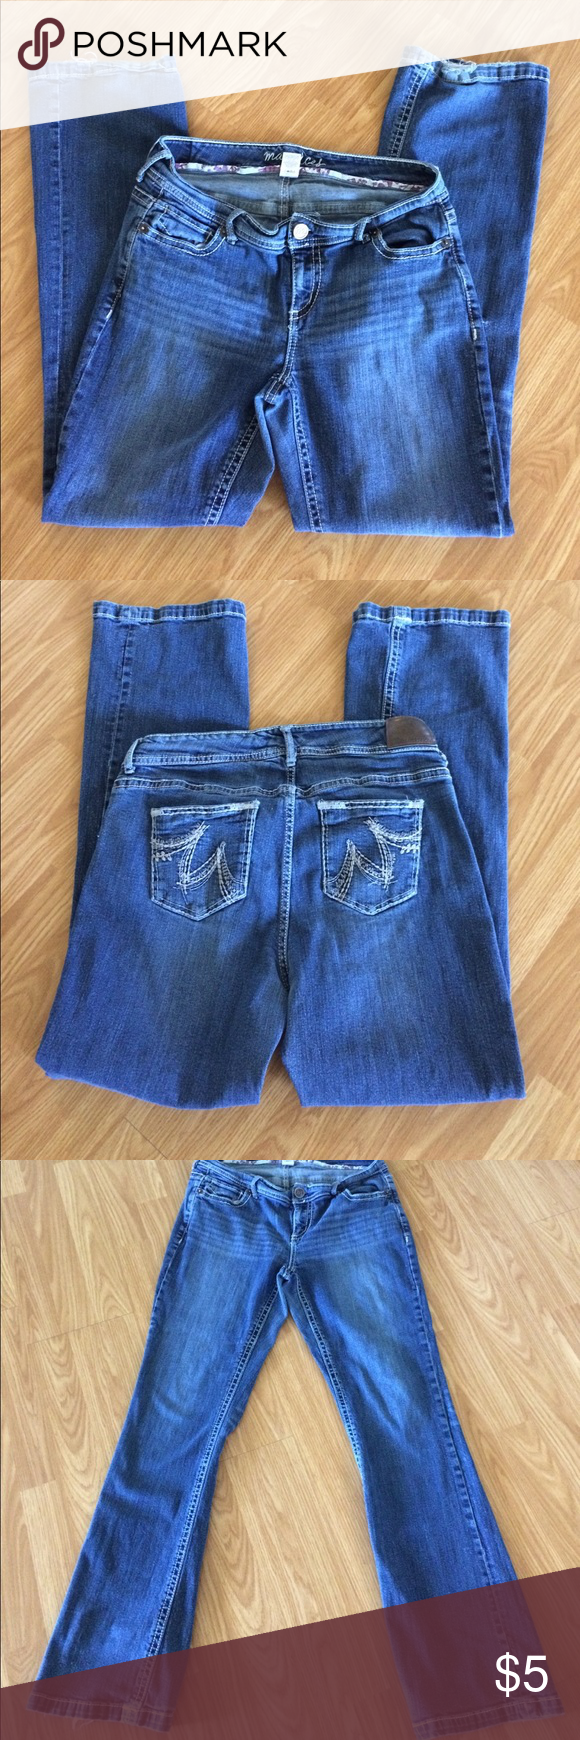 $5 Bundle Item Maurices 16 Long Boot Cut Jeans GUC! Flaws as pictured. Bundle Items must be bundled with three or more items to receive bundle price. Maurices Jeans Boot Cut